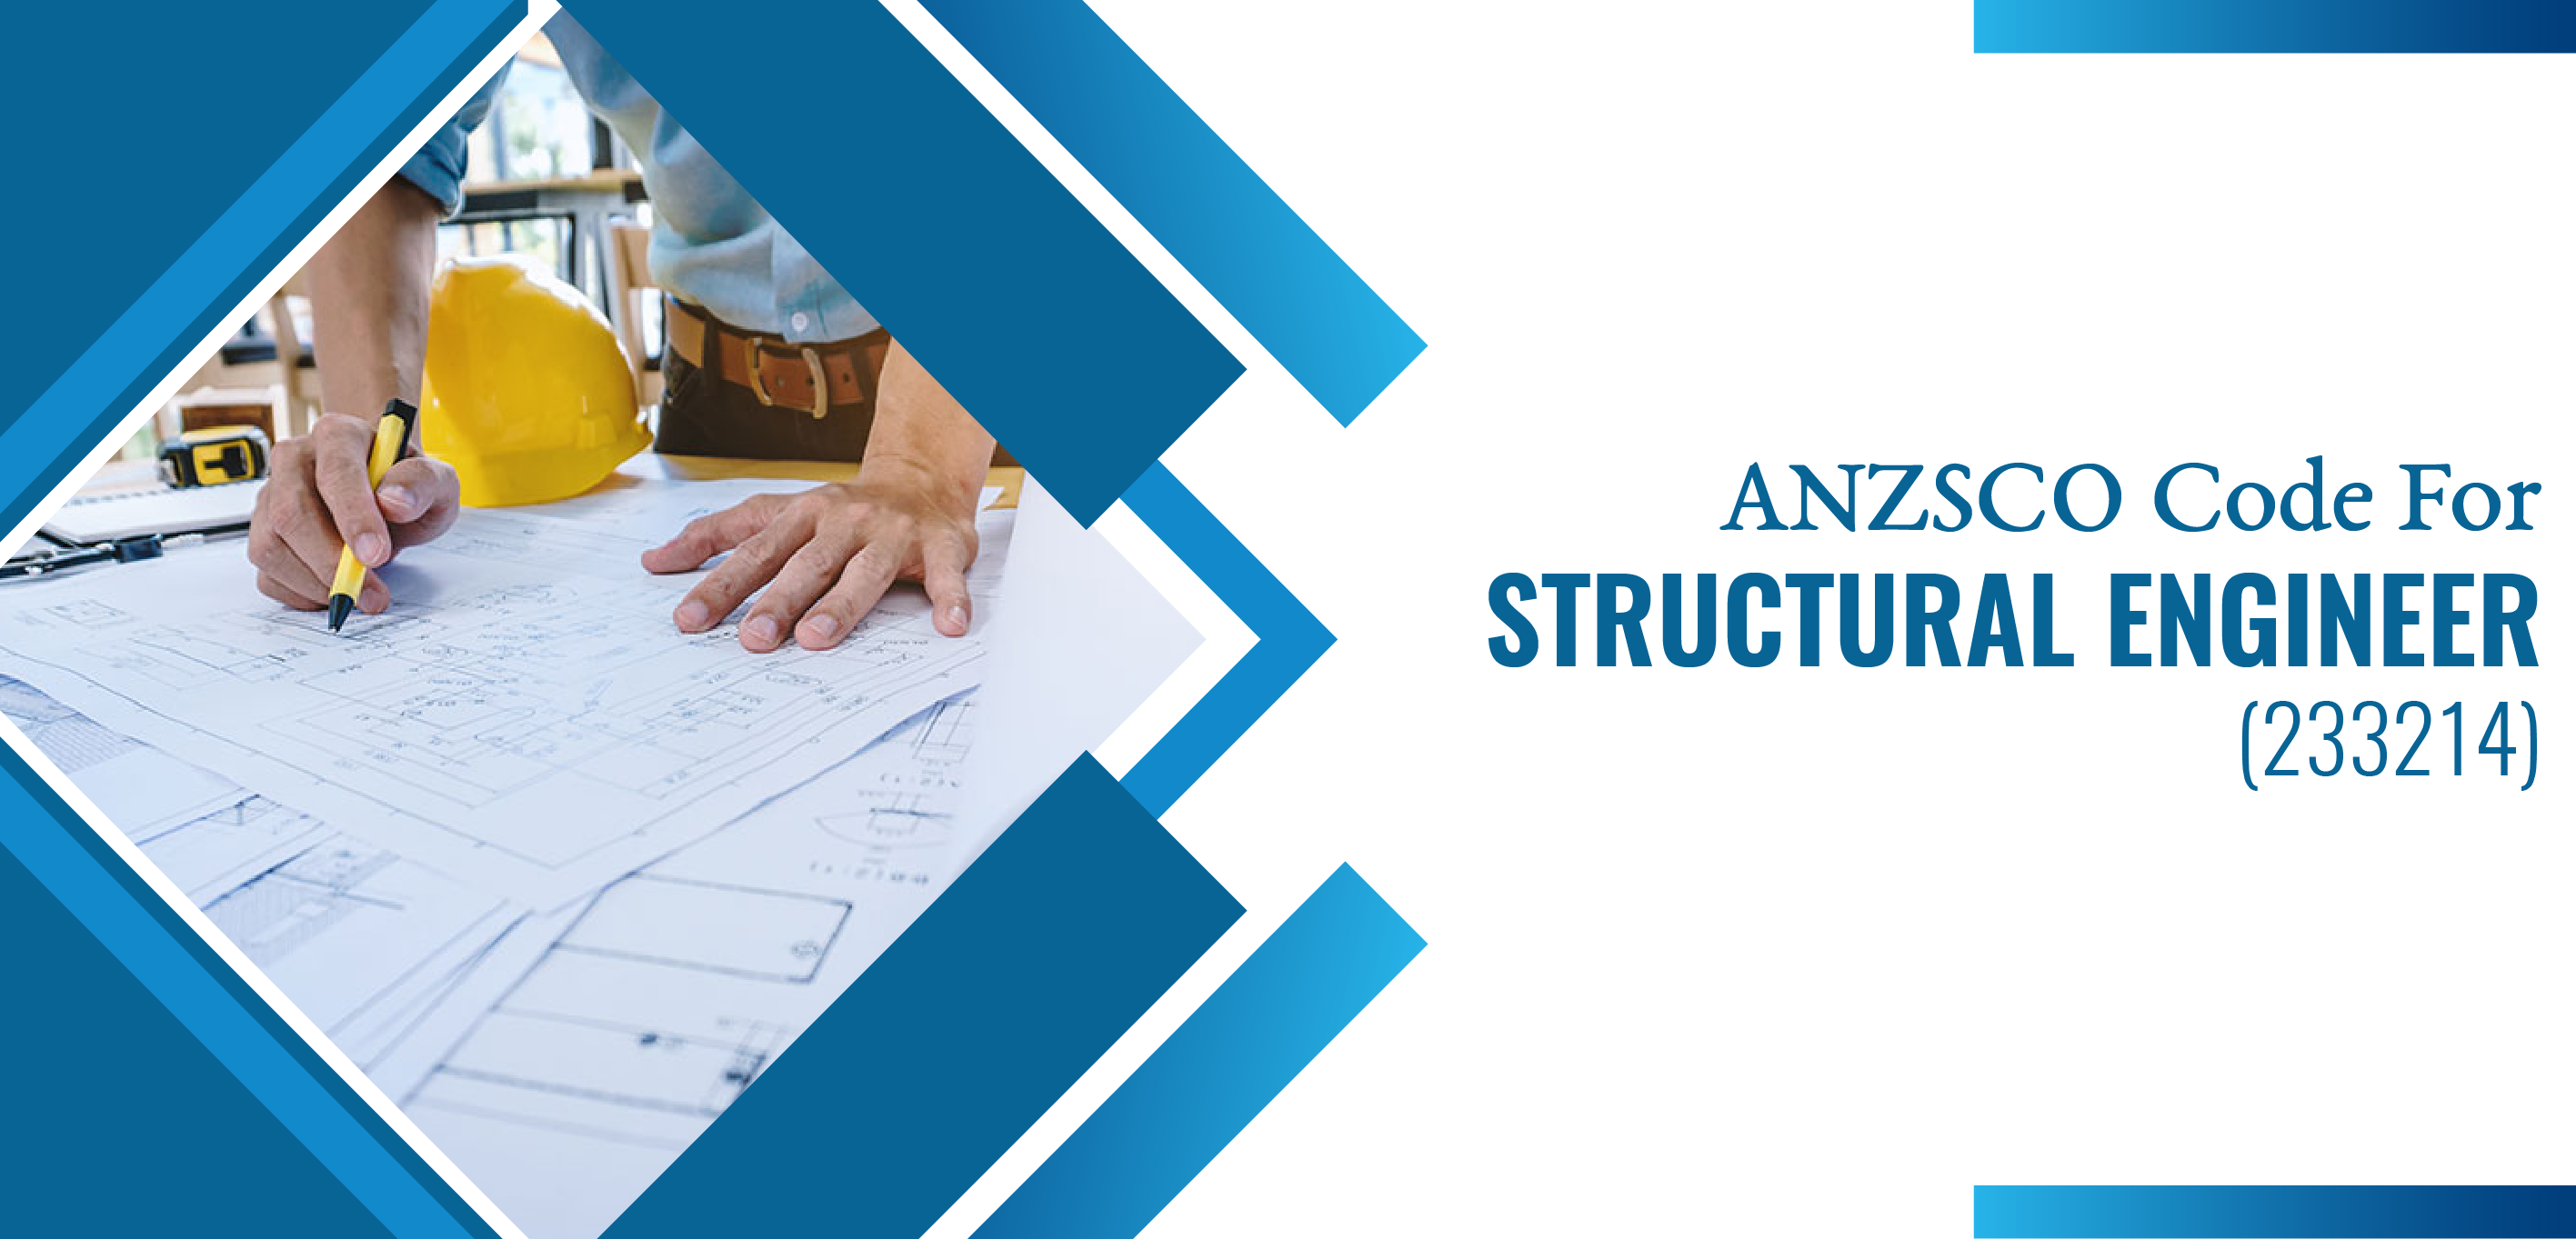 ANZSCO Code for Structural Engineer